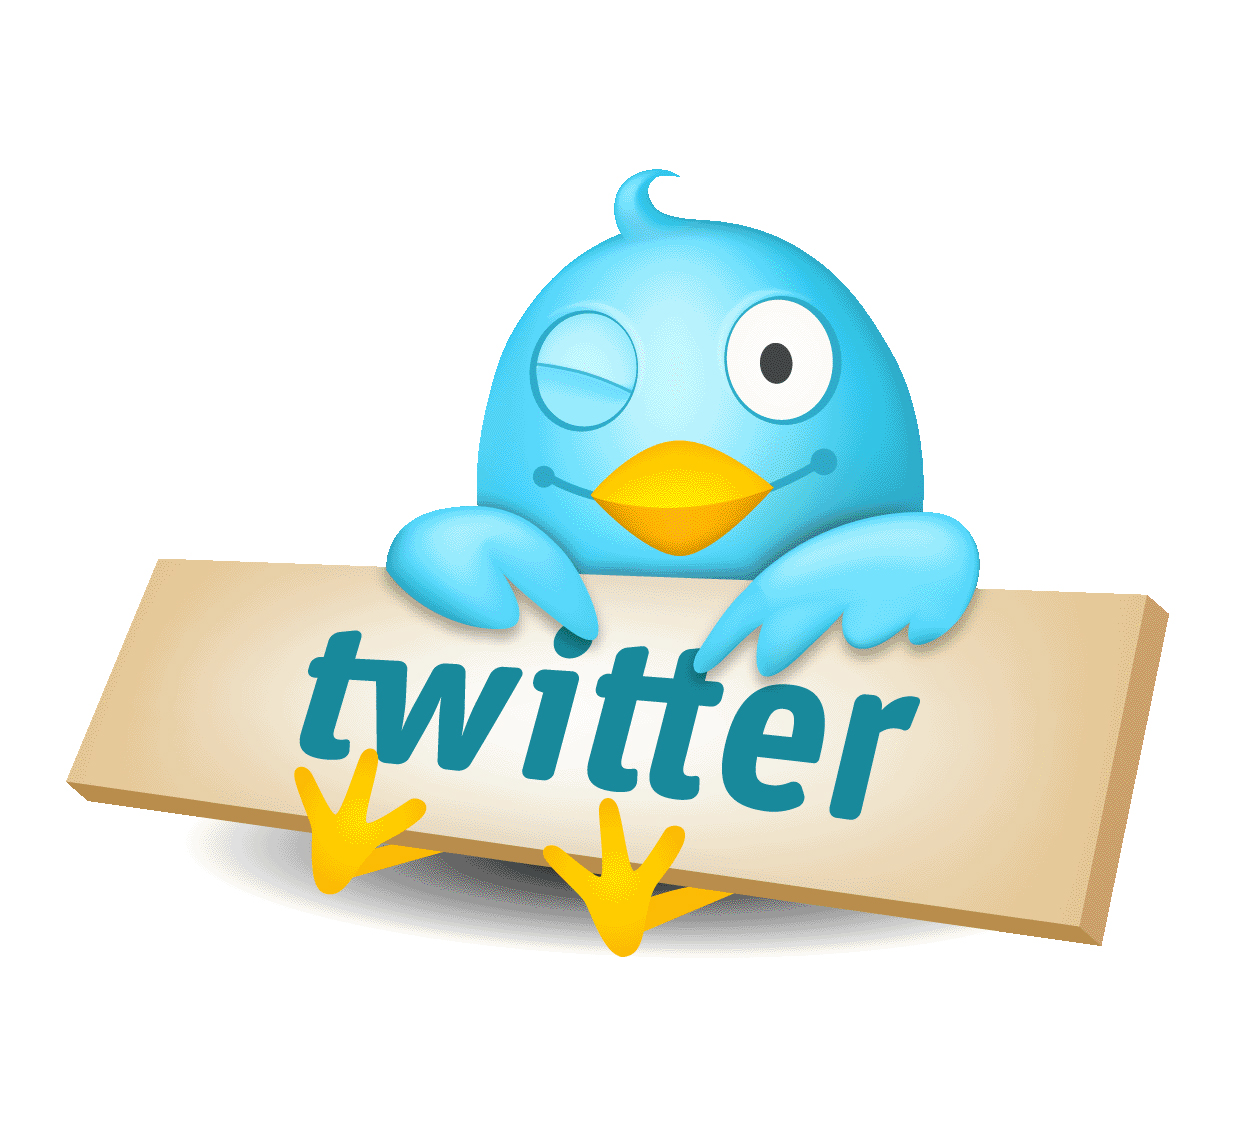 Twitter Marketing: Reasons to Tweet about Your Business